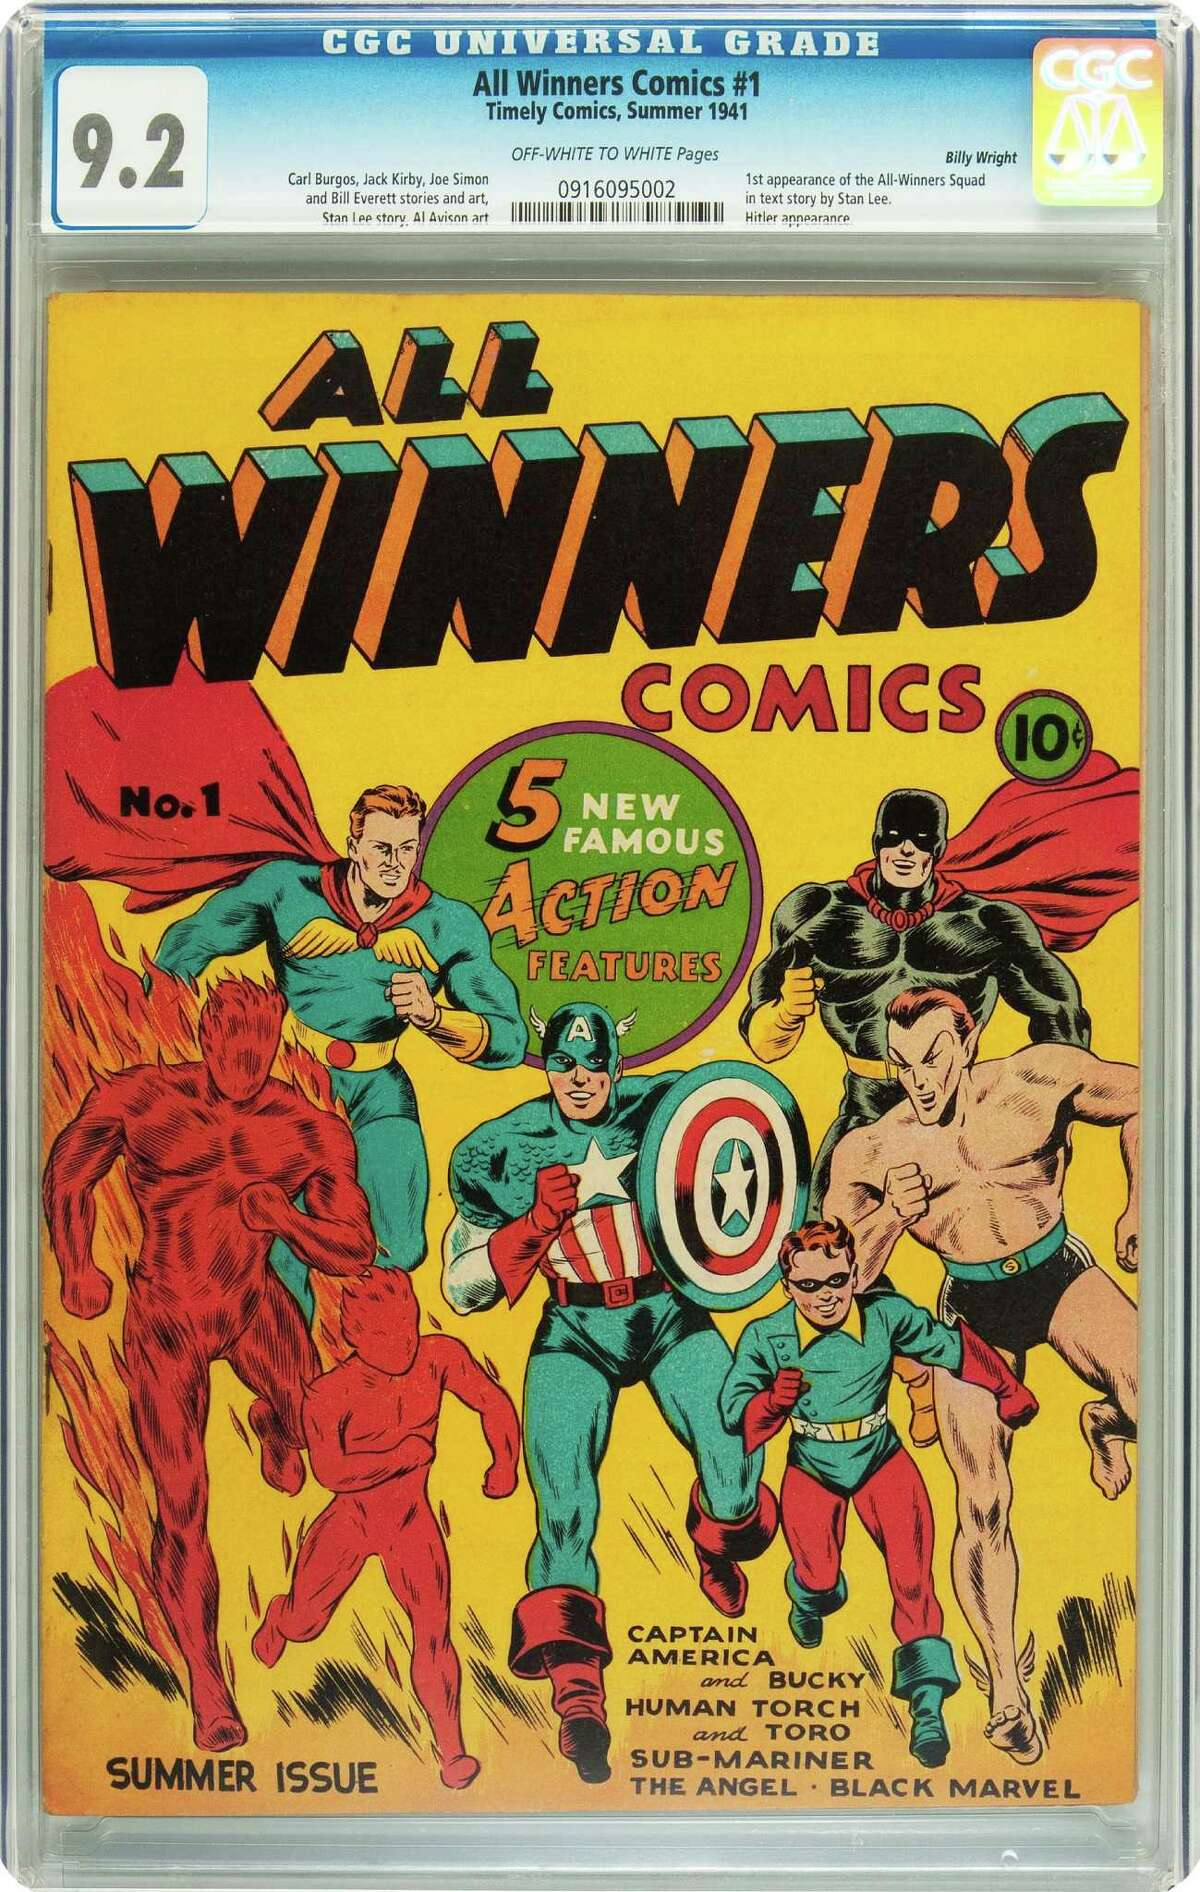 This comic book is one of dozens allegedly sold in Chicago by former DA investigator Lonnie Blevins.